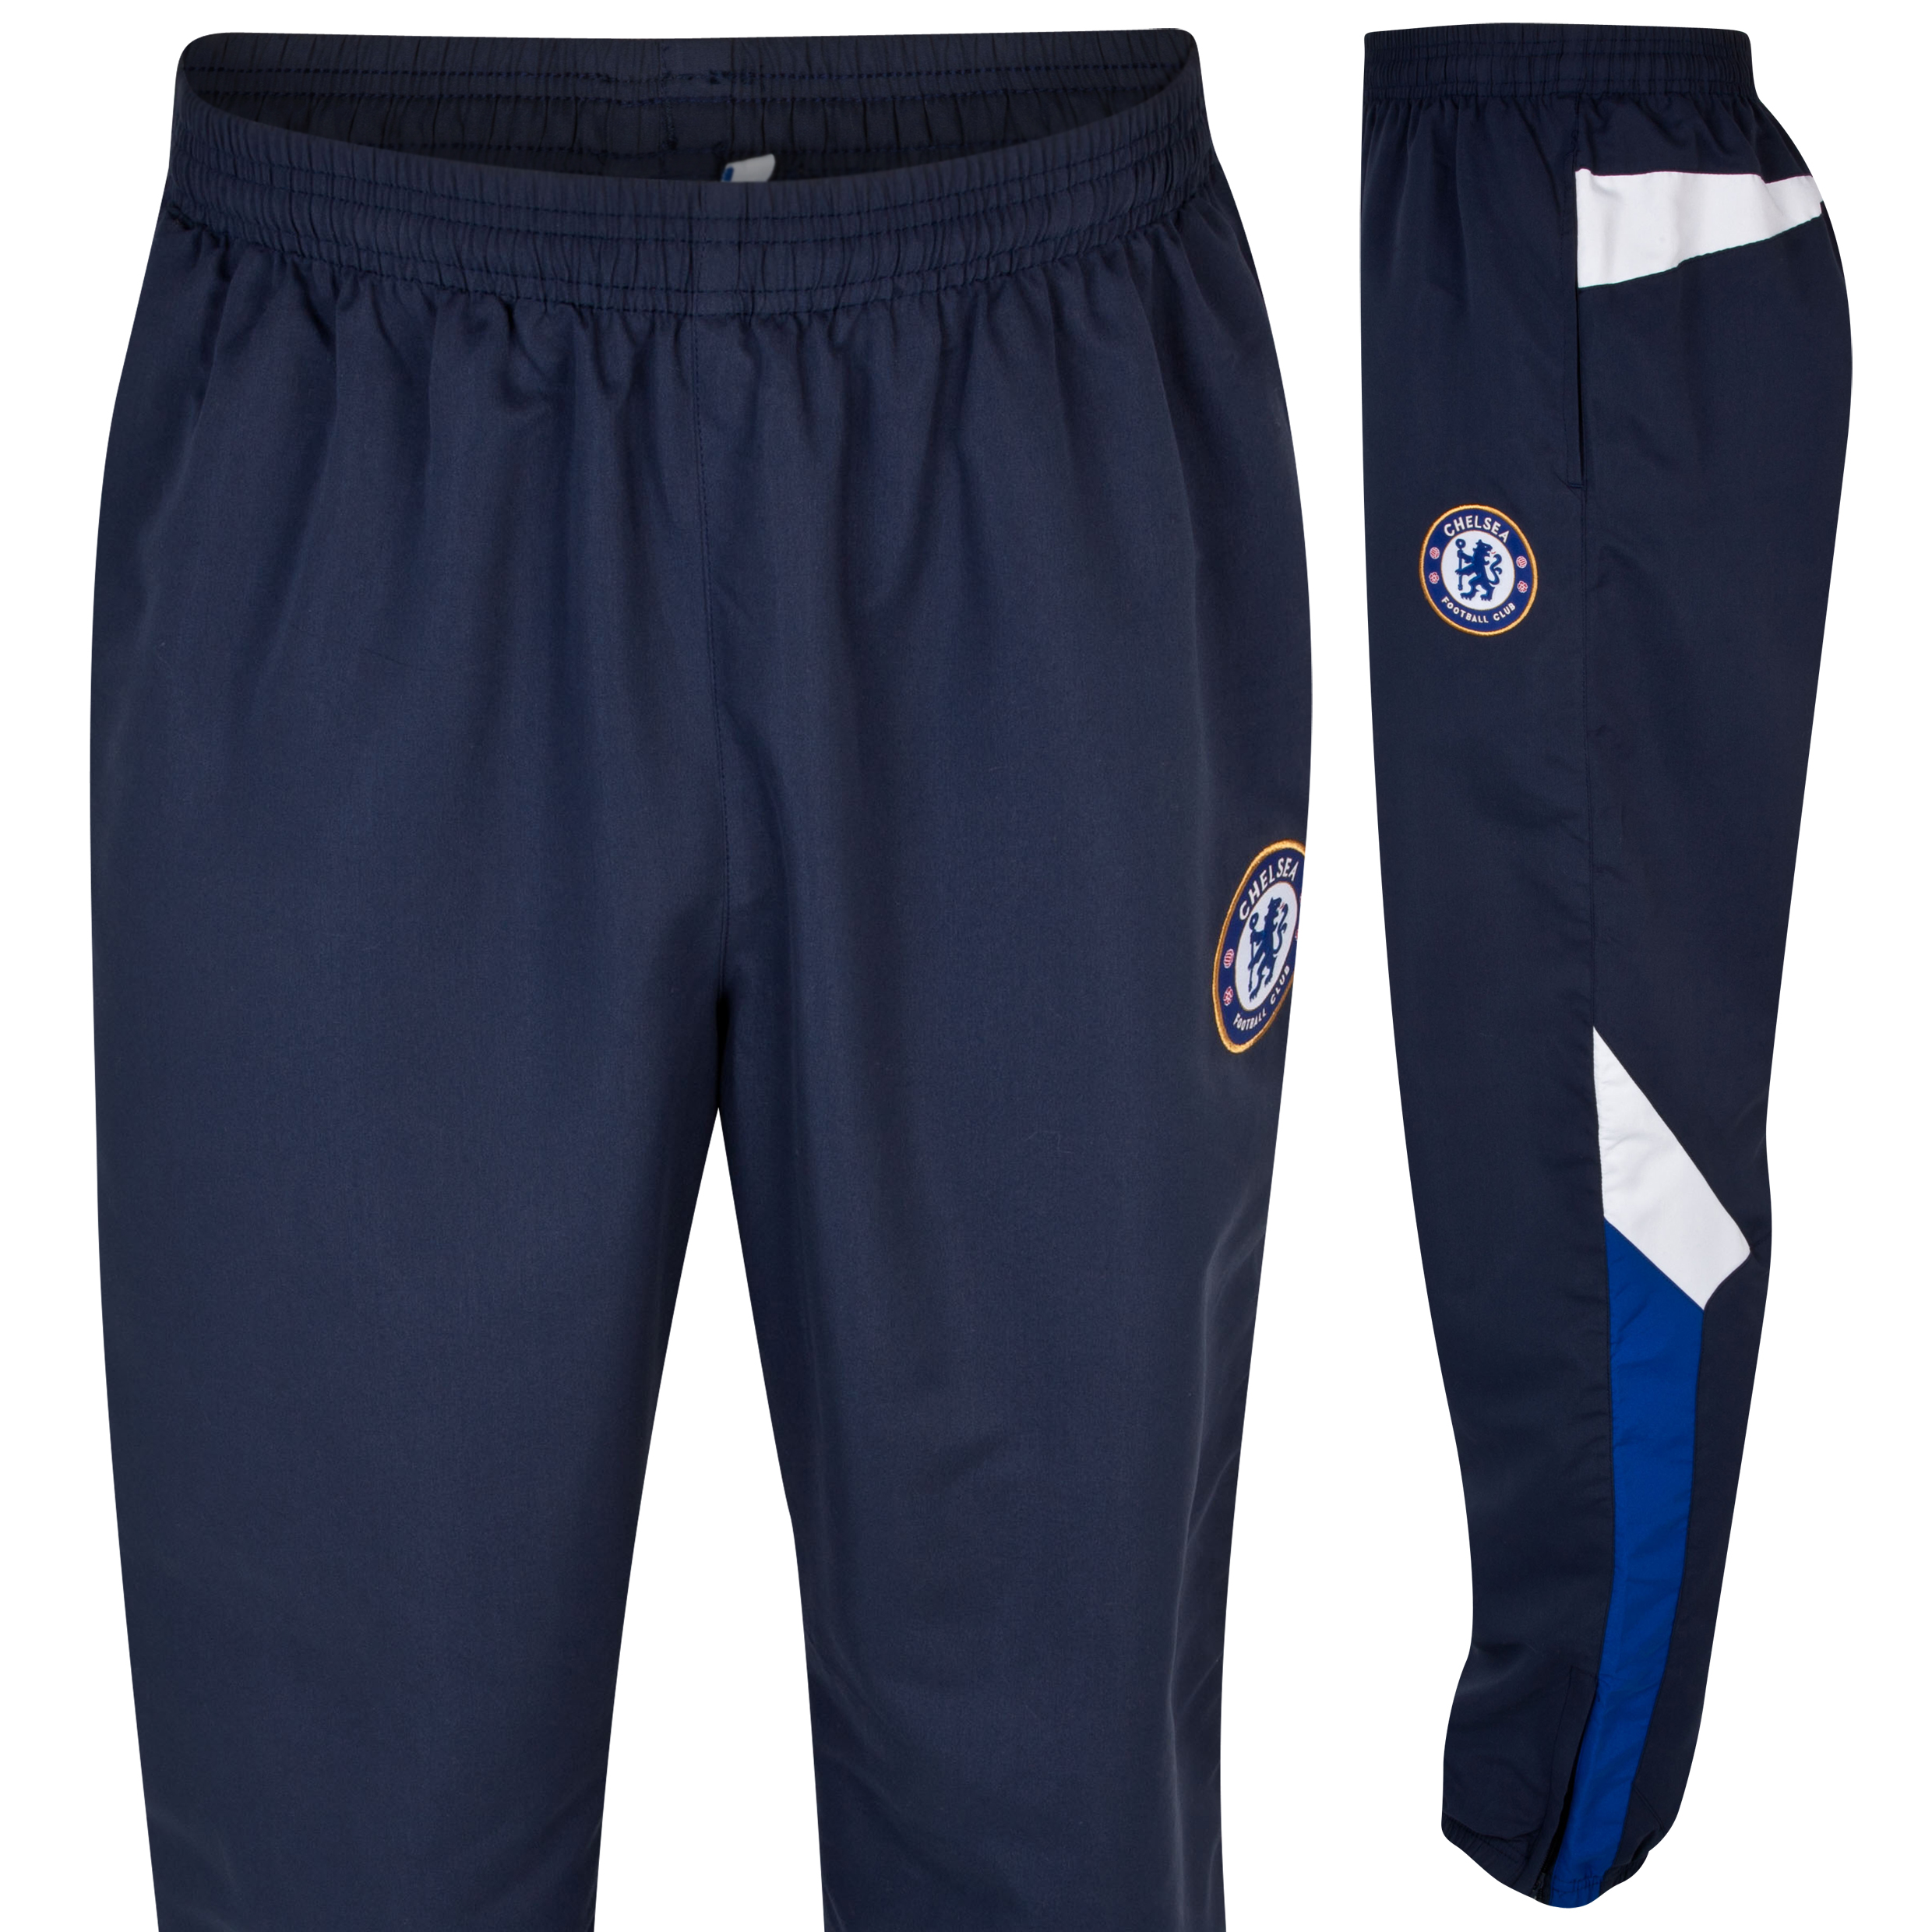 Chelsea Basic Woven Leisure Pant - Navy